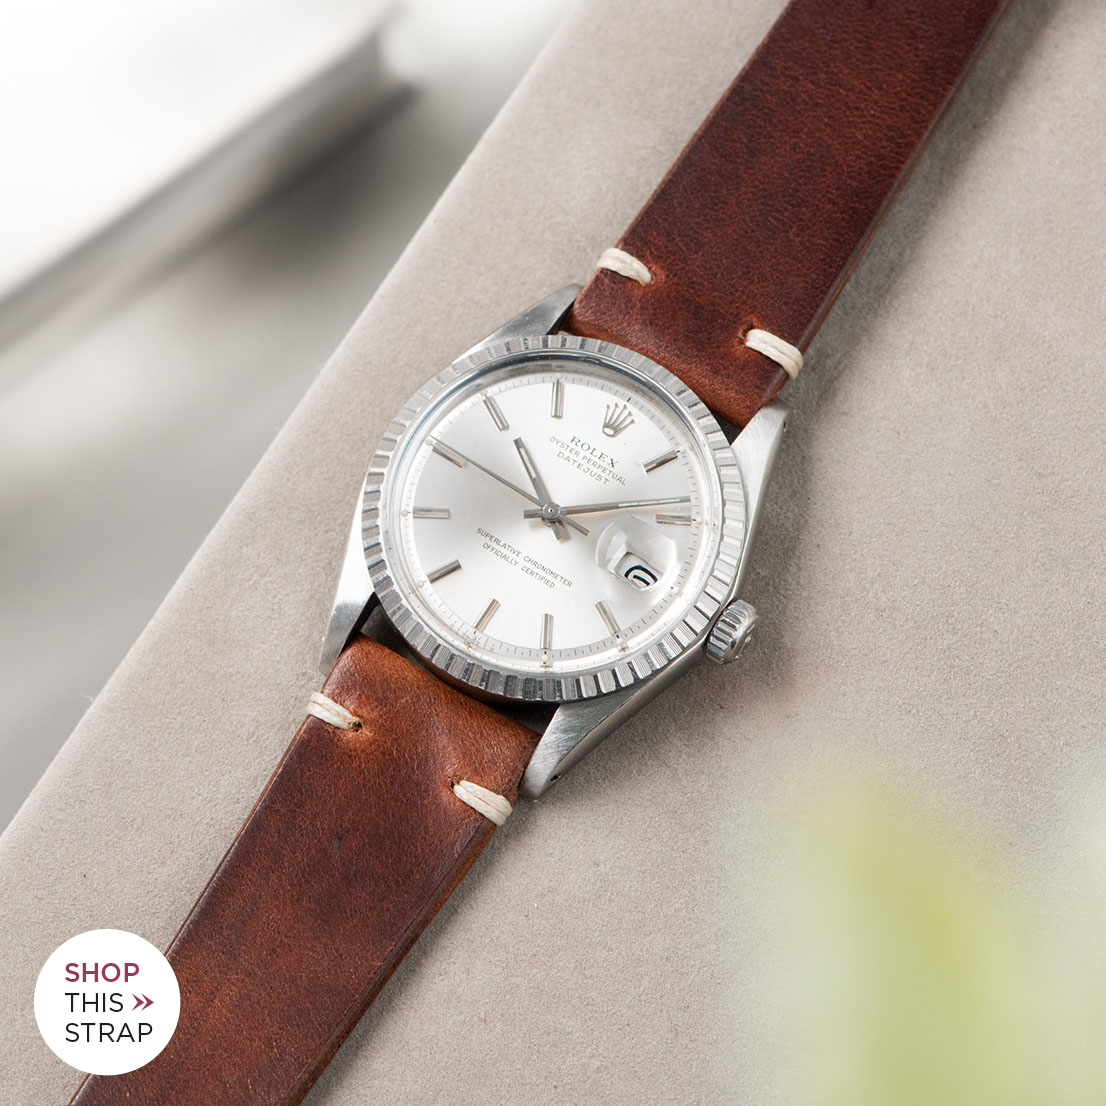 Bulang and sons_Strap Guide_Rolex Datejust Silverdial 1601 1603 1600 1630_SIENA BROWN LEATHER WATCH STRAP